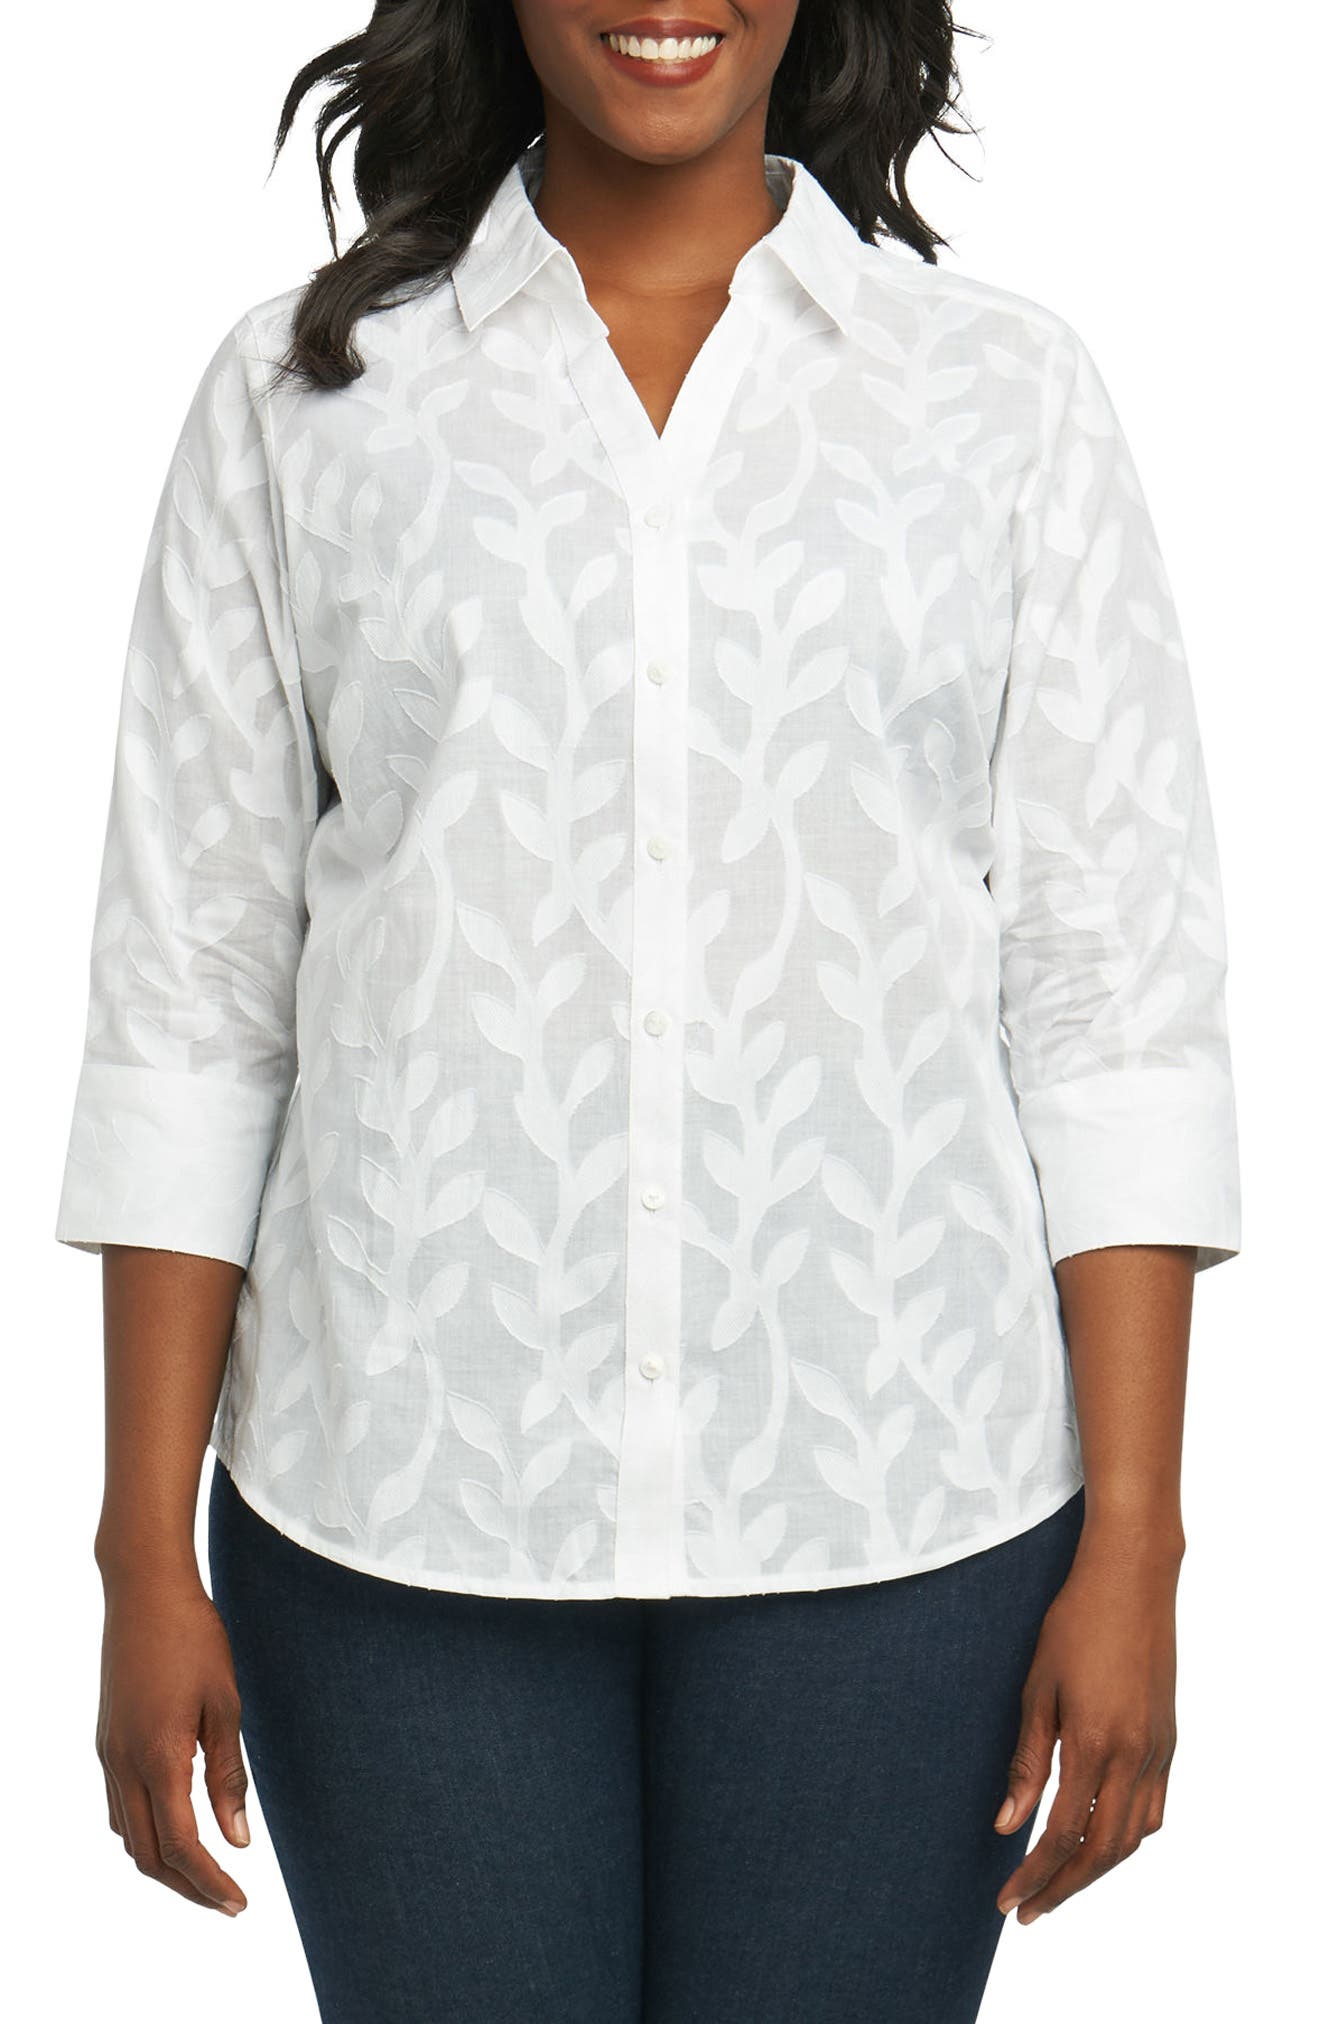 Mary Palm Jacquard Shirt,                         Main,                         color, 100